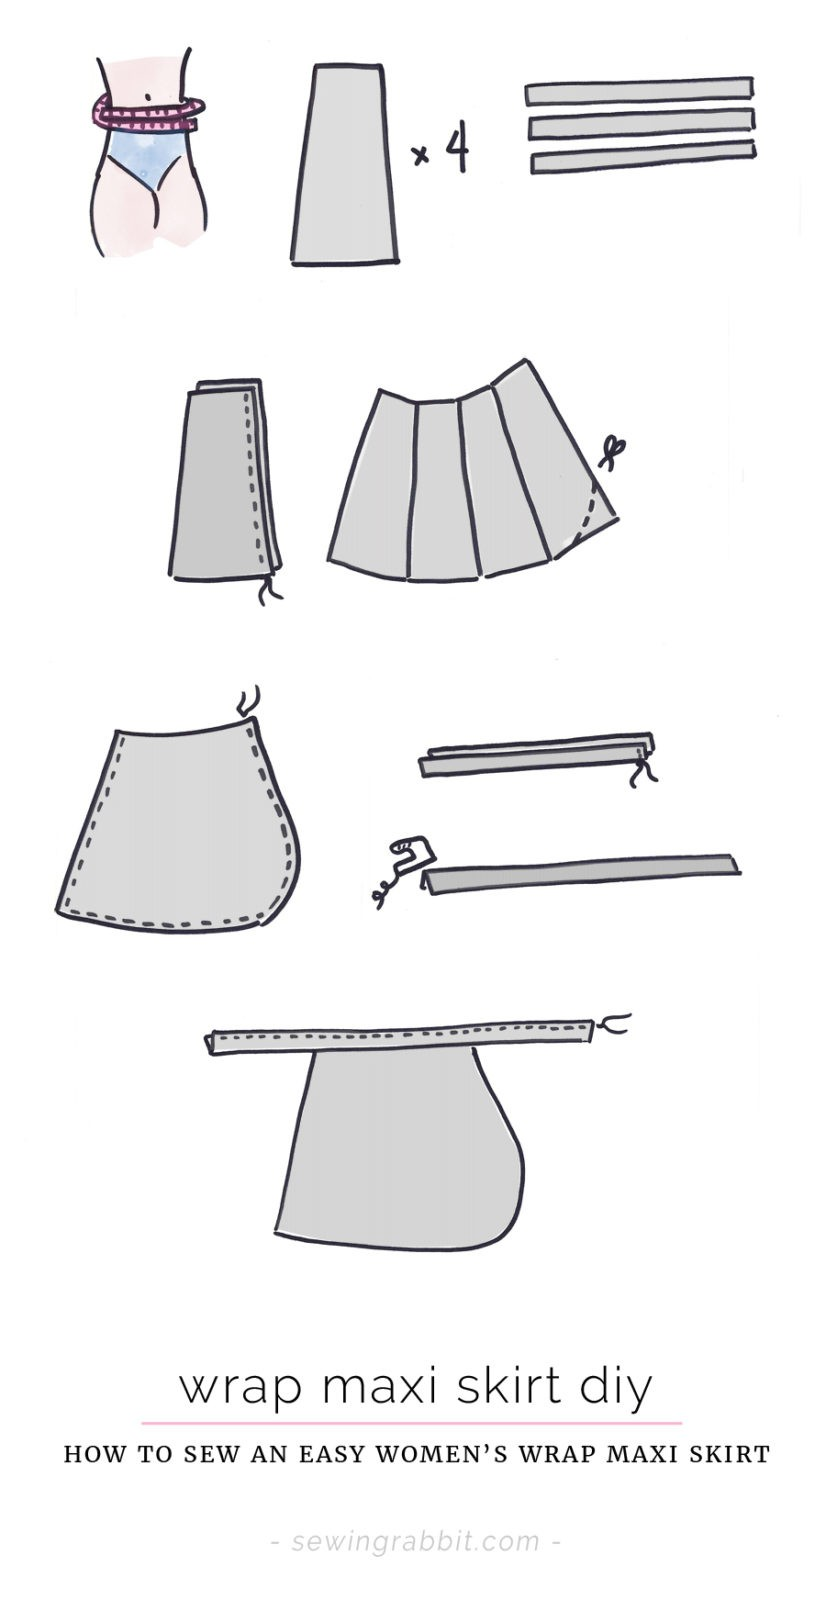 Wrap Maxi Skirt DIY - The Sewing Rabbit